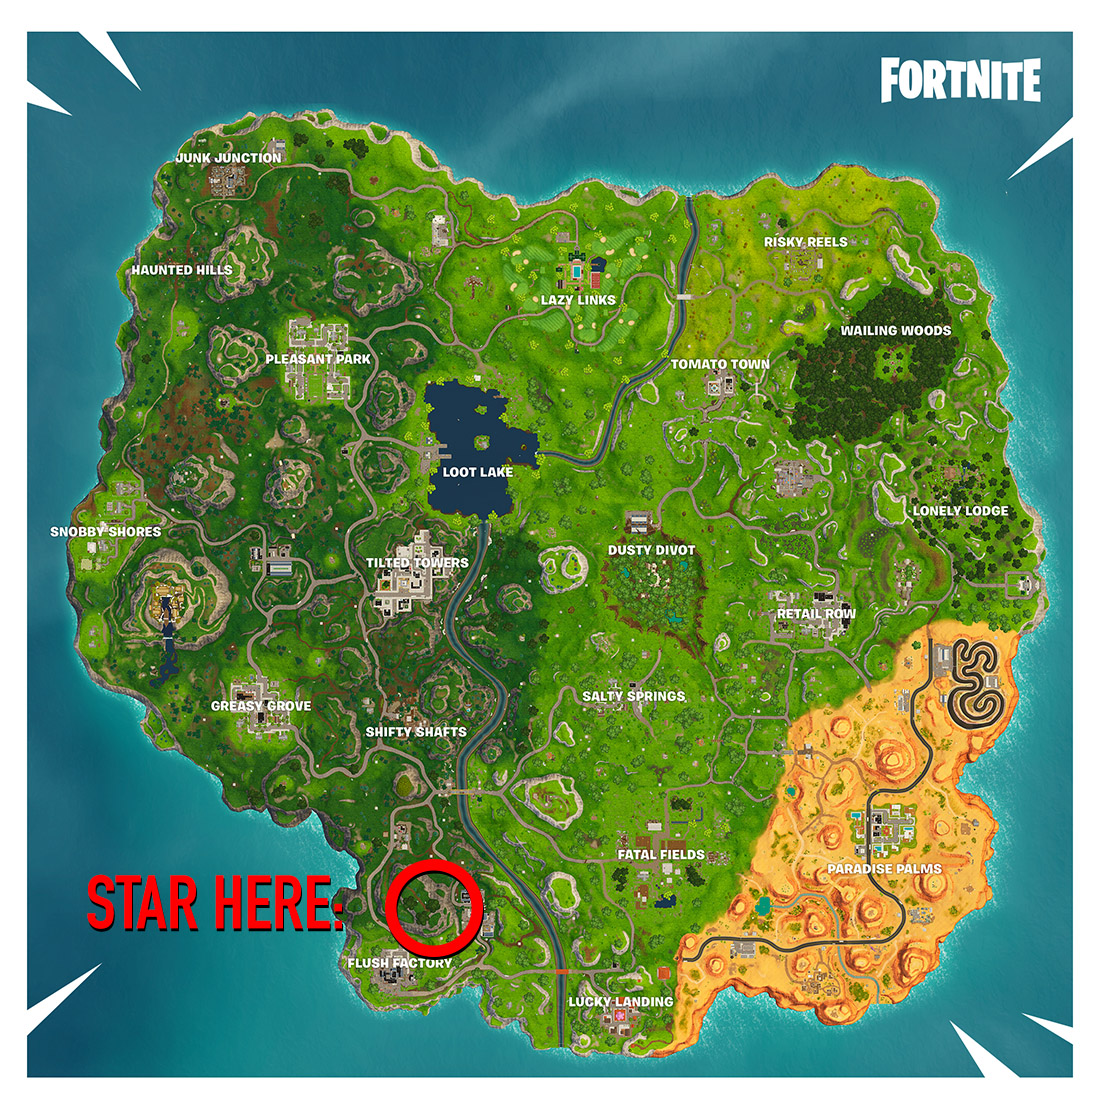 Search between three oversized seats: How to complete Fortnite's week 8 challenge